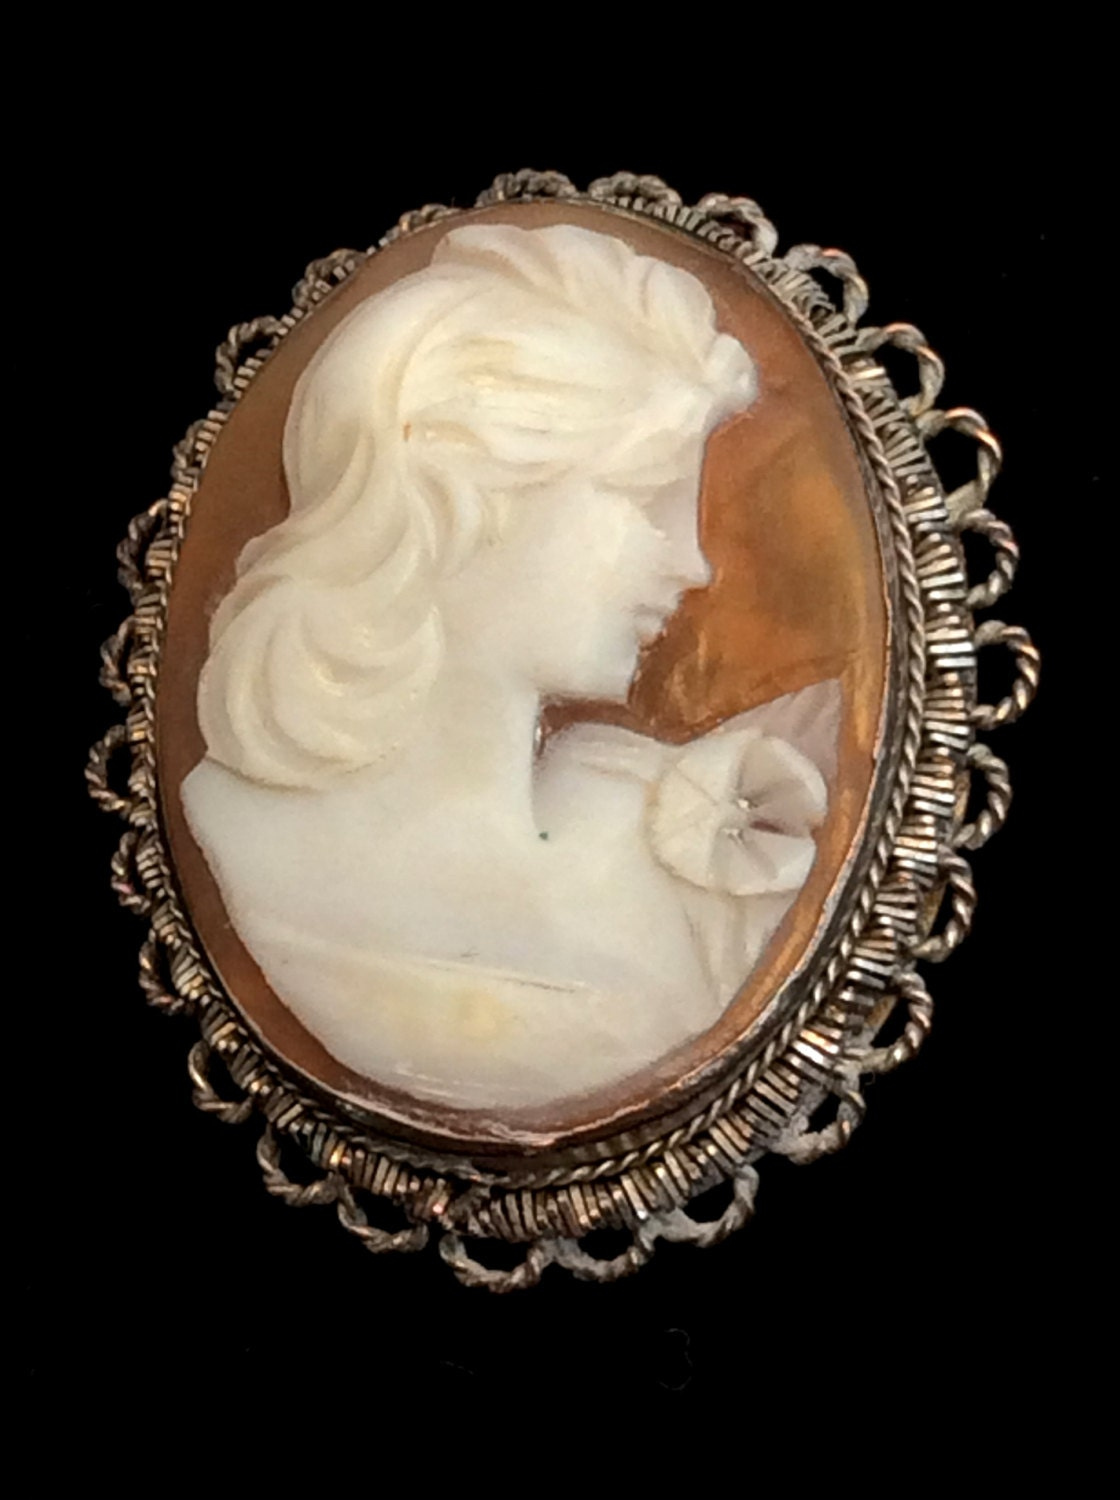 antique cameo brooch pin or pendant sterling silver wire